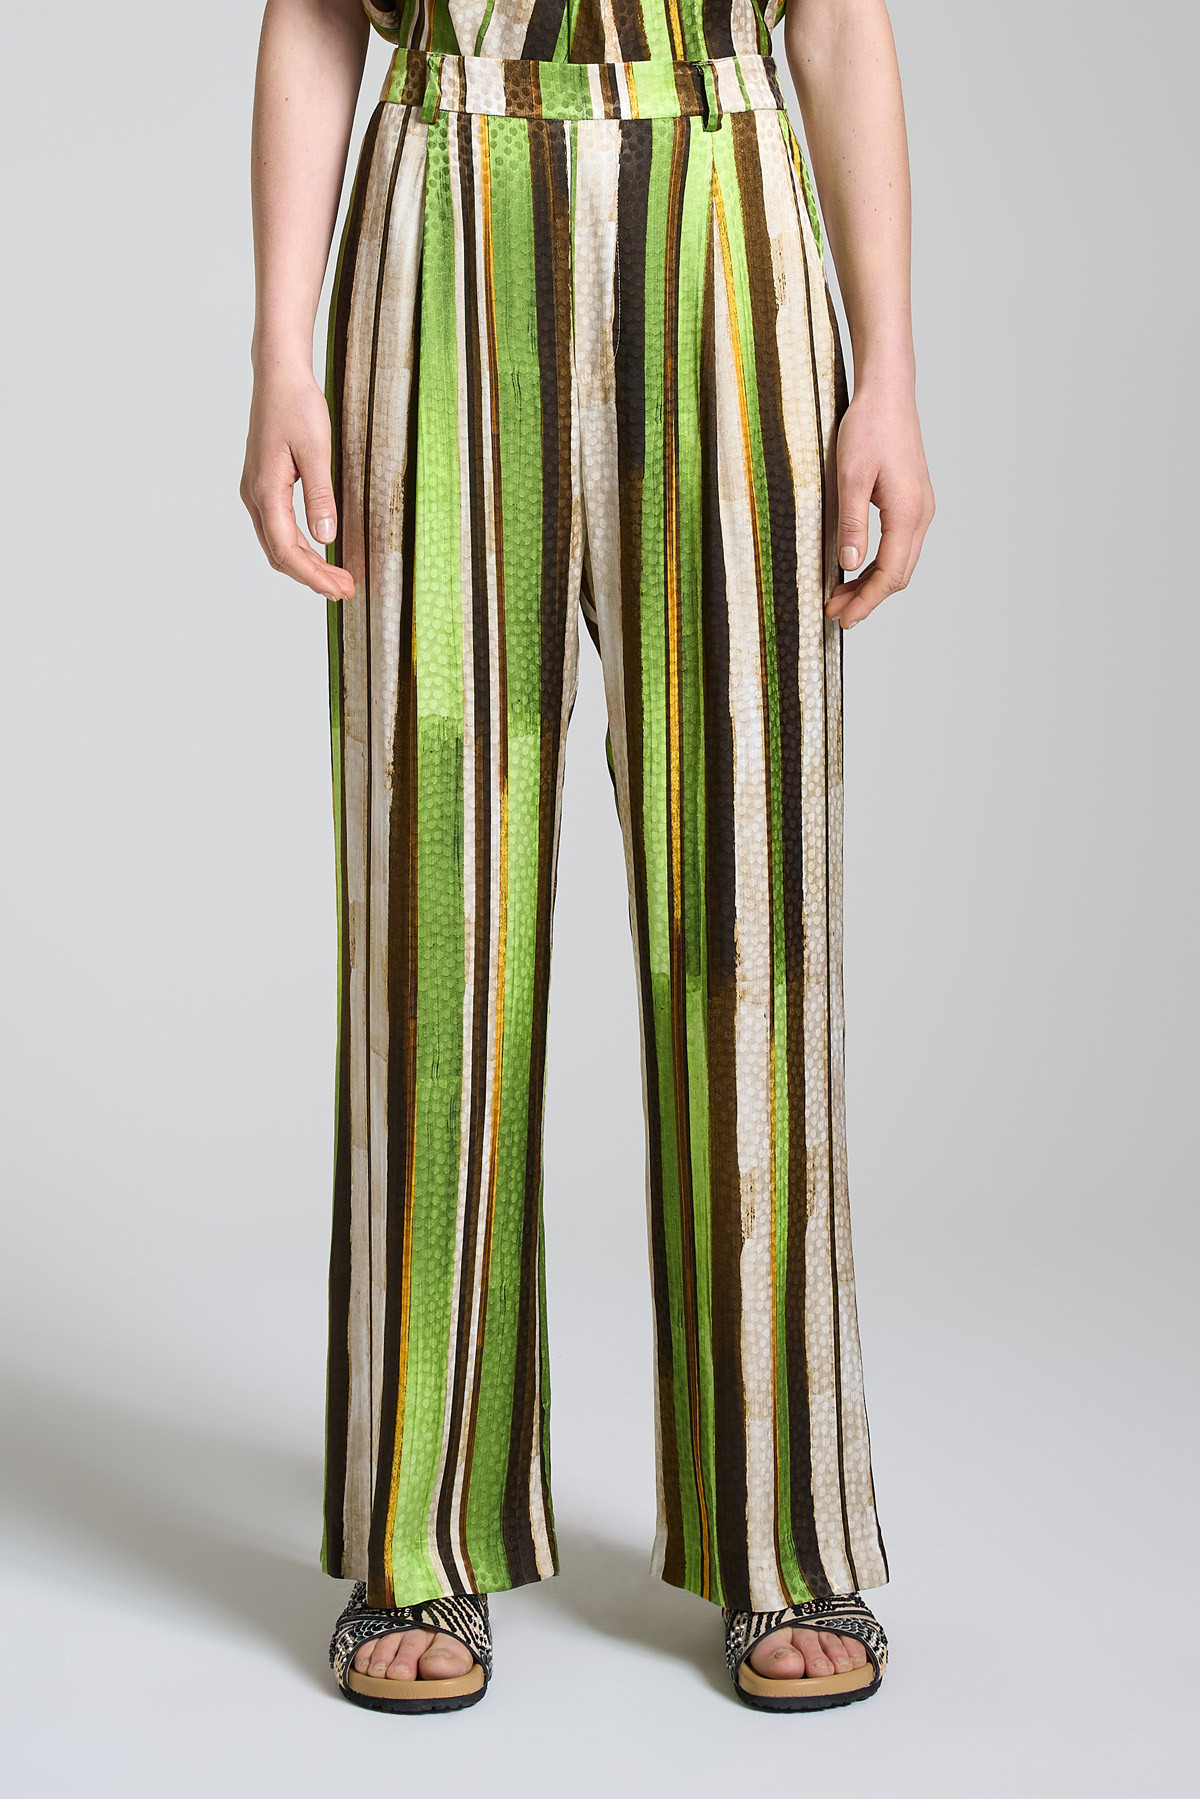 Women's Clothing Straight Leg Trousers Stripes Jacquard with Green and Natural Stripes Maliparmi | Skirts and Pants | JH743250557C6022